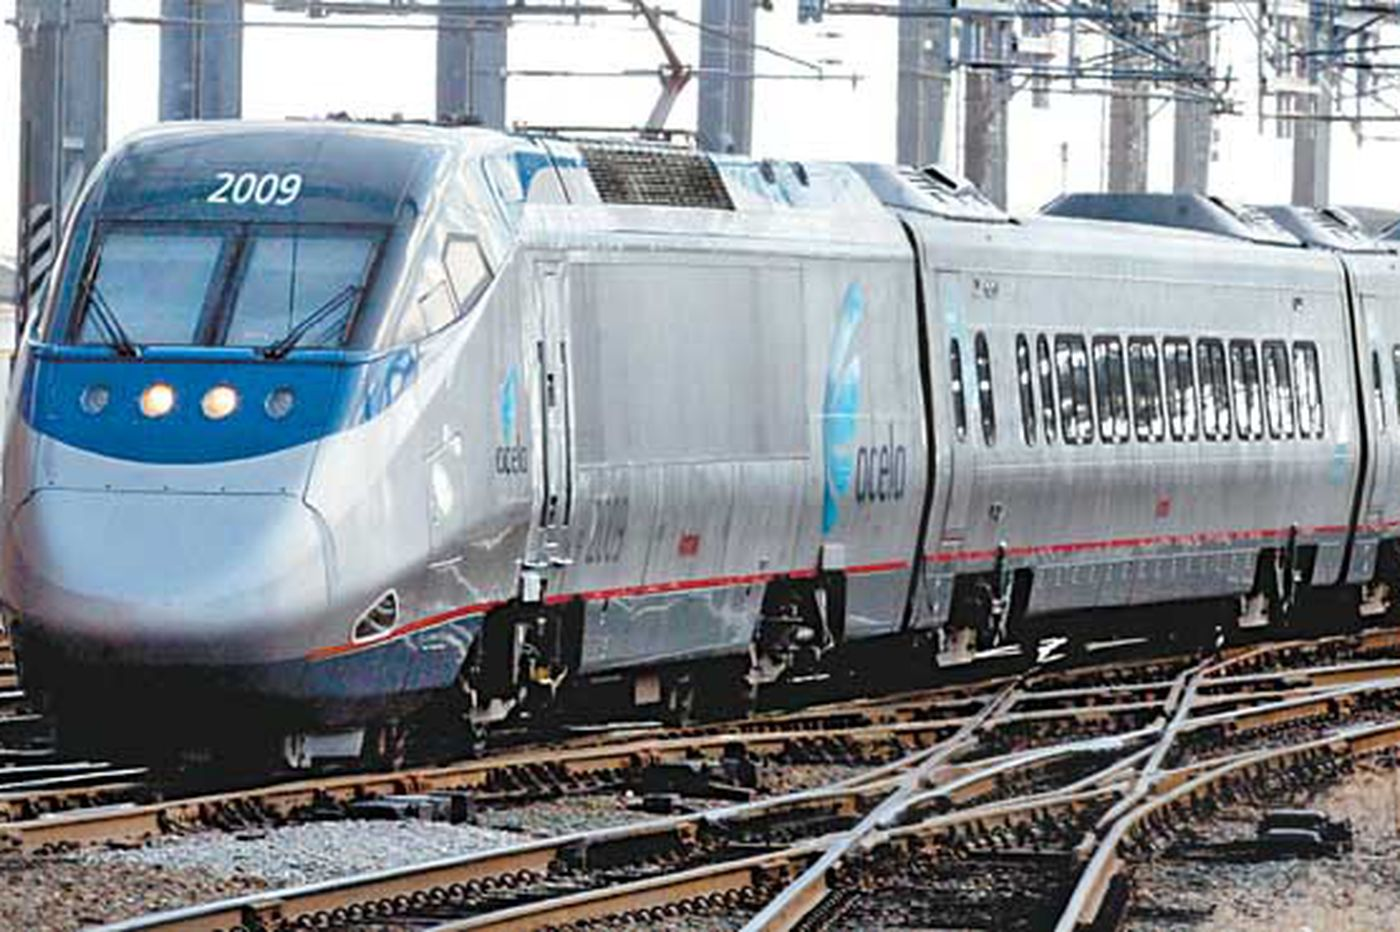 Amtrak skips Philly with new non-stop Acela train from New York to Washington